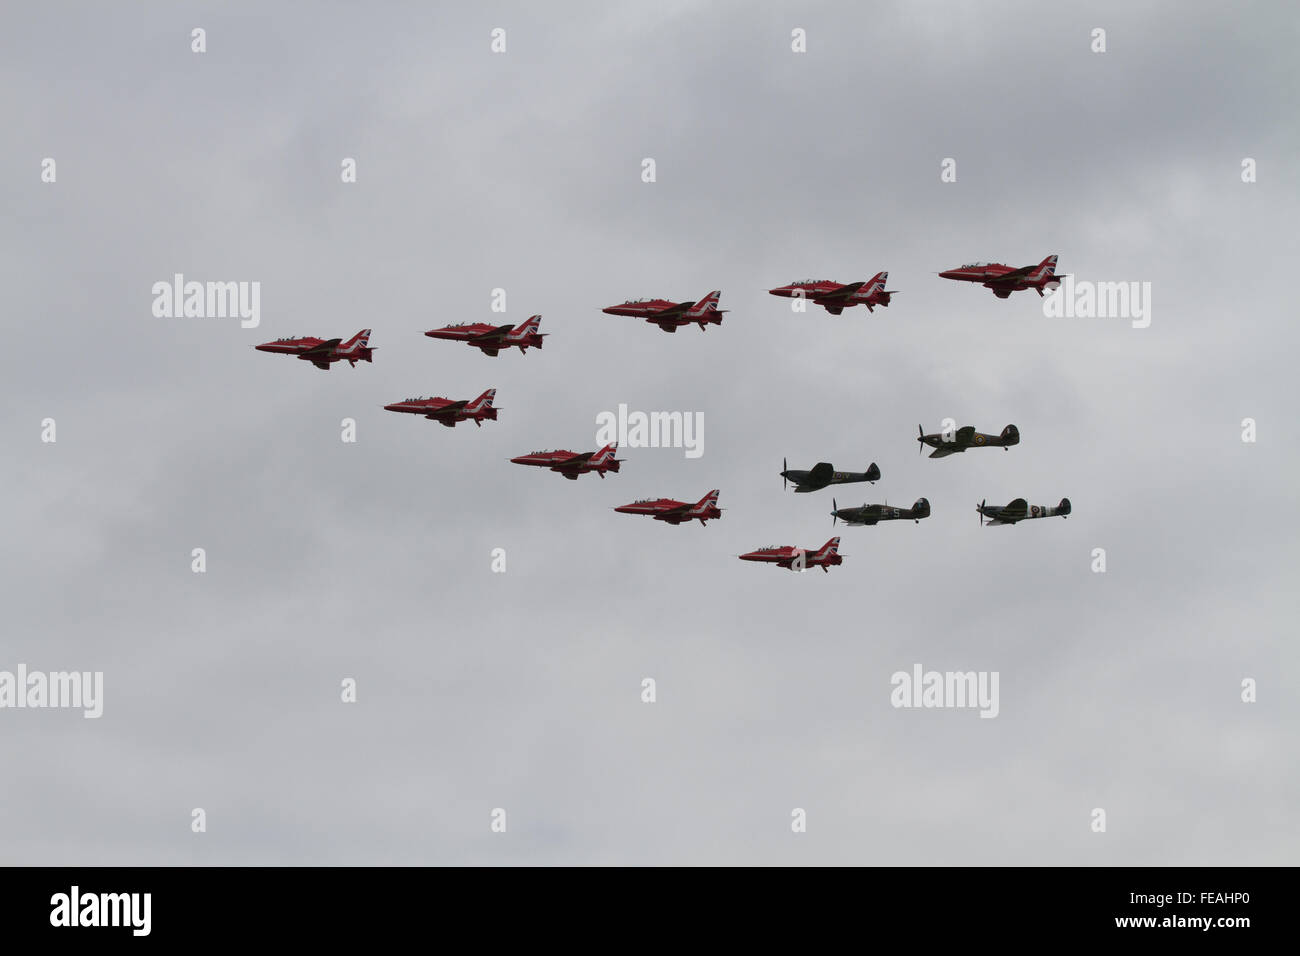 The RAF Red Arrows Display Team in formation with the Battle of Britain Memorial Flight fighters Spitfire Hurricane - Stock Image